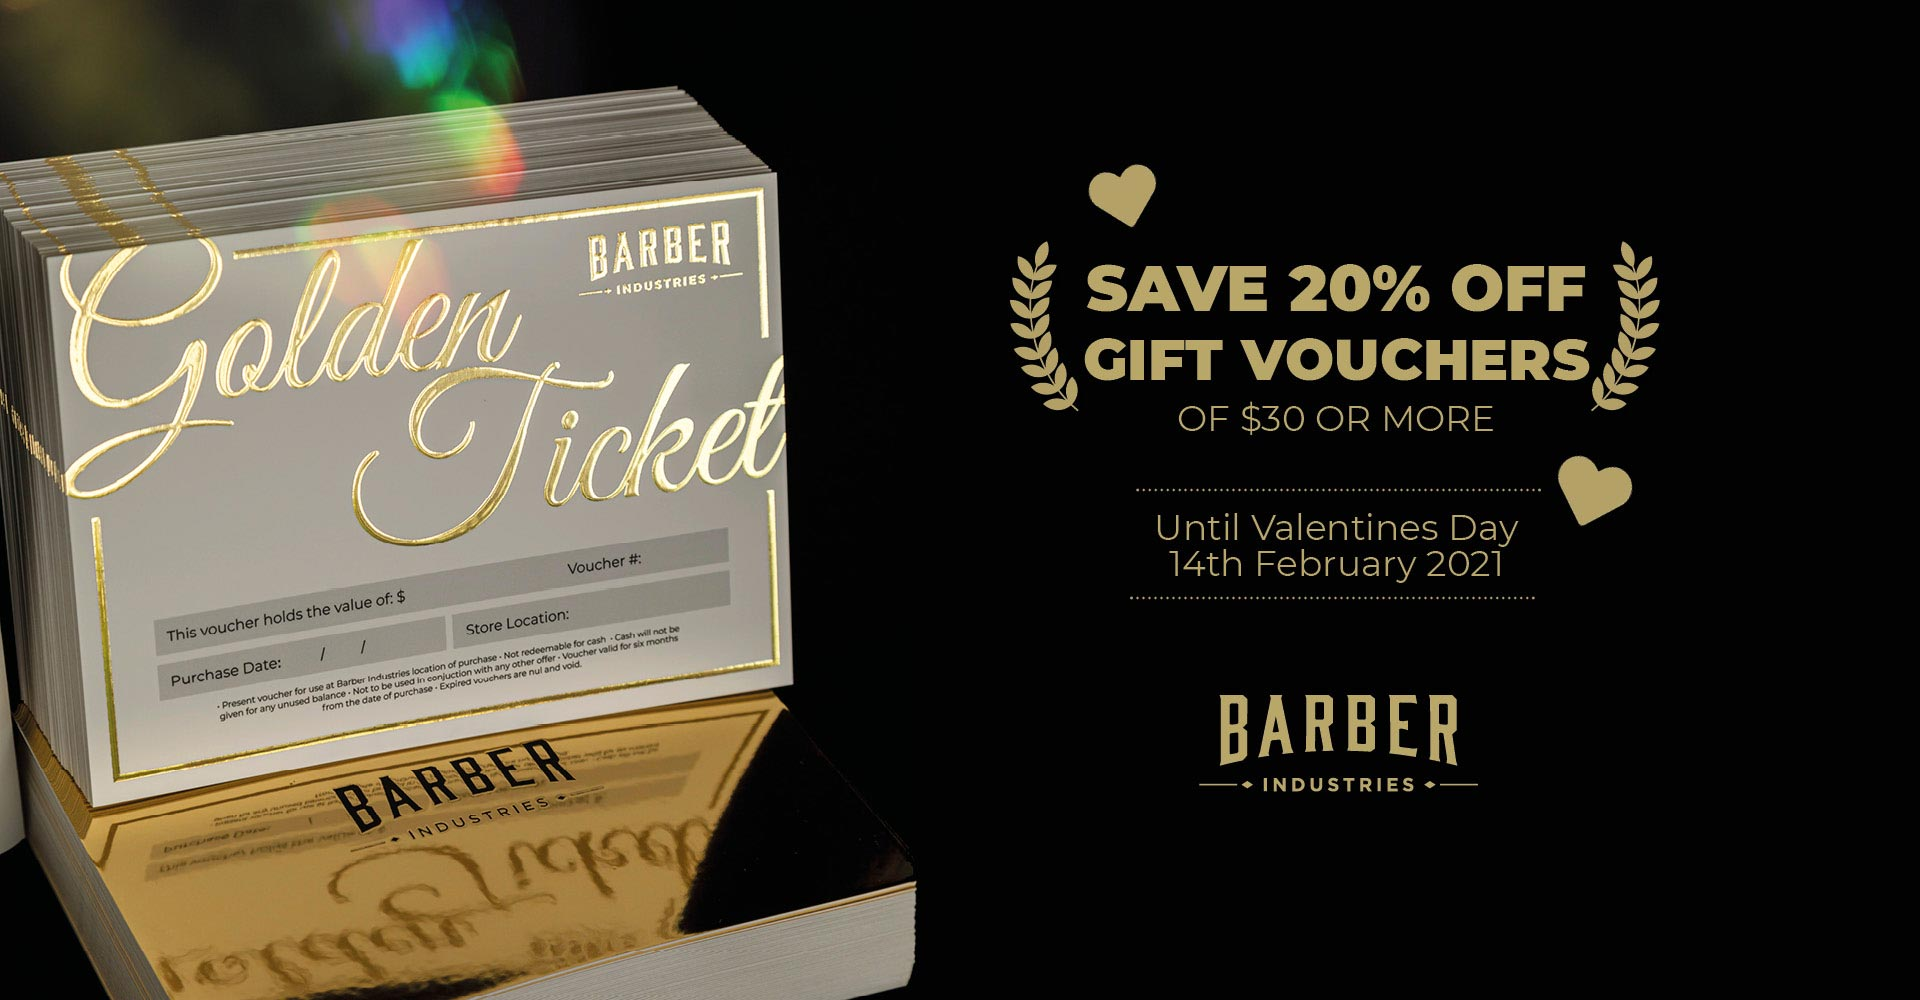 Save 20% on gift vouchers for valentines day